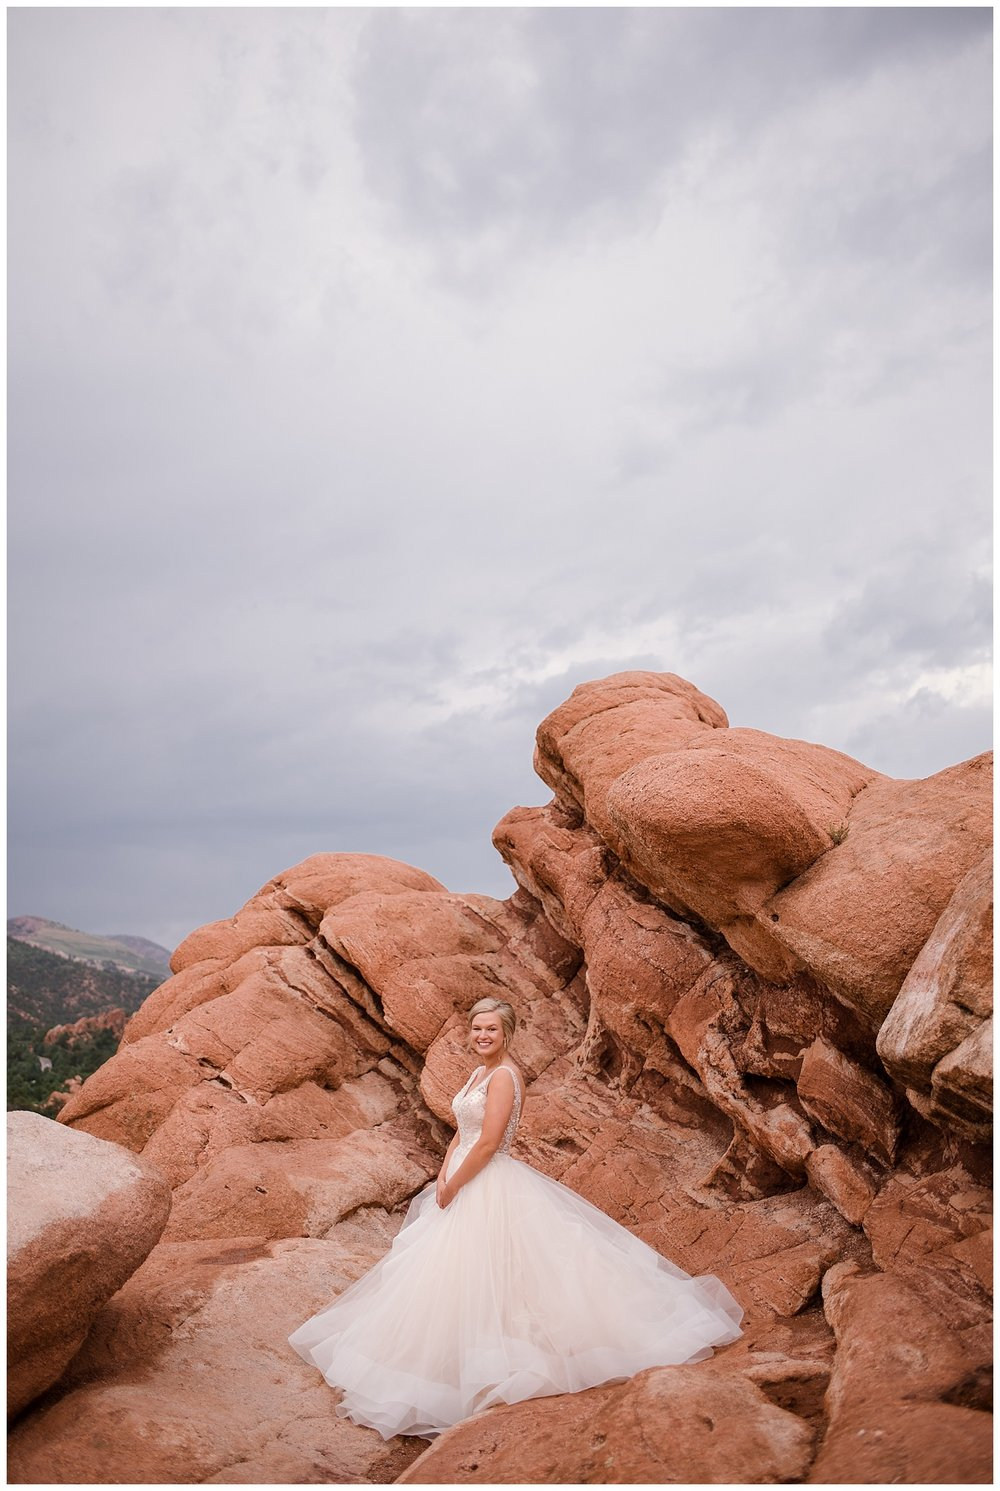 Military Wedding, bride and groom, navy suit groom, dress blues groom, bride alone tulle dress GOTG, bridal party, romantic portraits at garden of the gods, bride and groom at garden of the gods, Colorado Wedding Photographer, Denver Wedding Photographer, Denver Elopement Photographer, Colorado Elopement Photographer, Rocky Mountain Wedding Photographer, Downtown Denver Photographer,